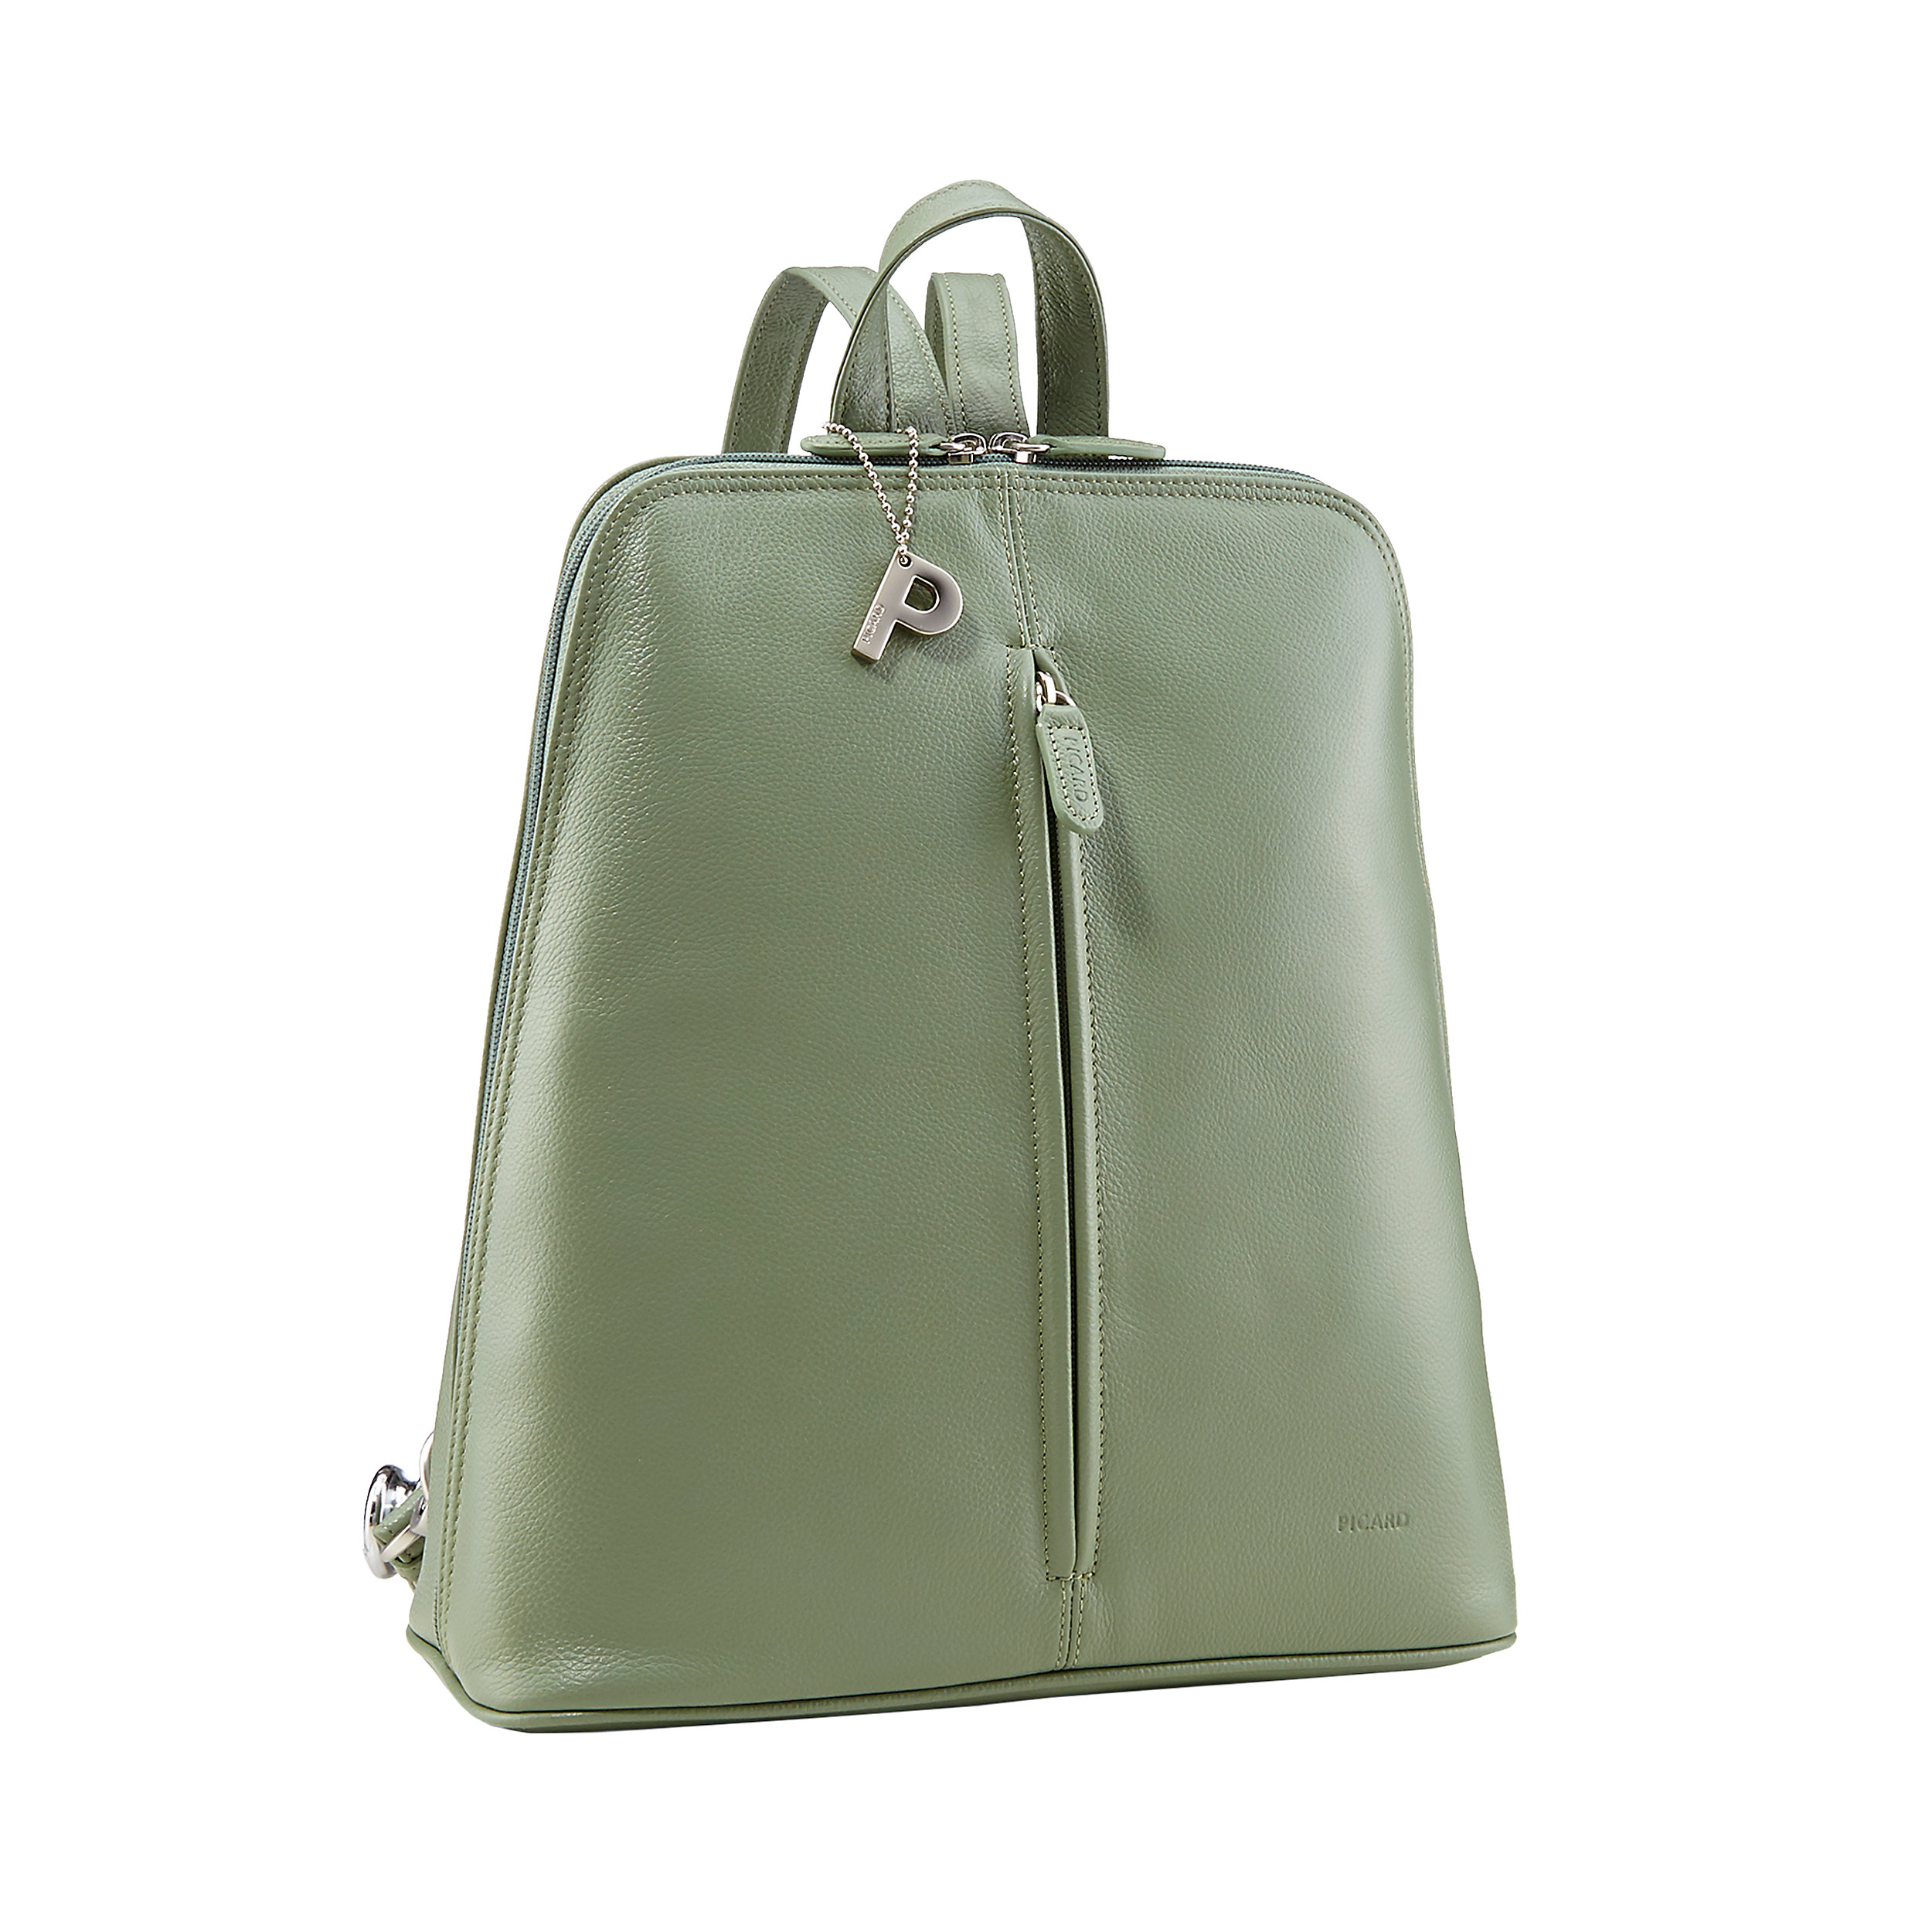 Backpack with vertical front pocket Luis